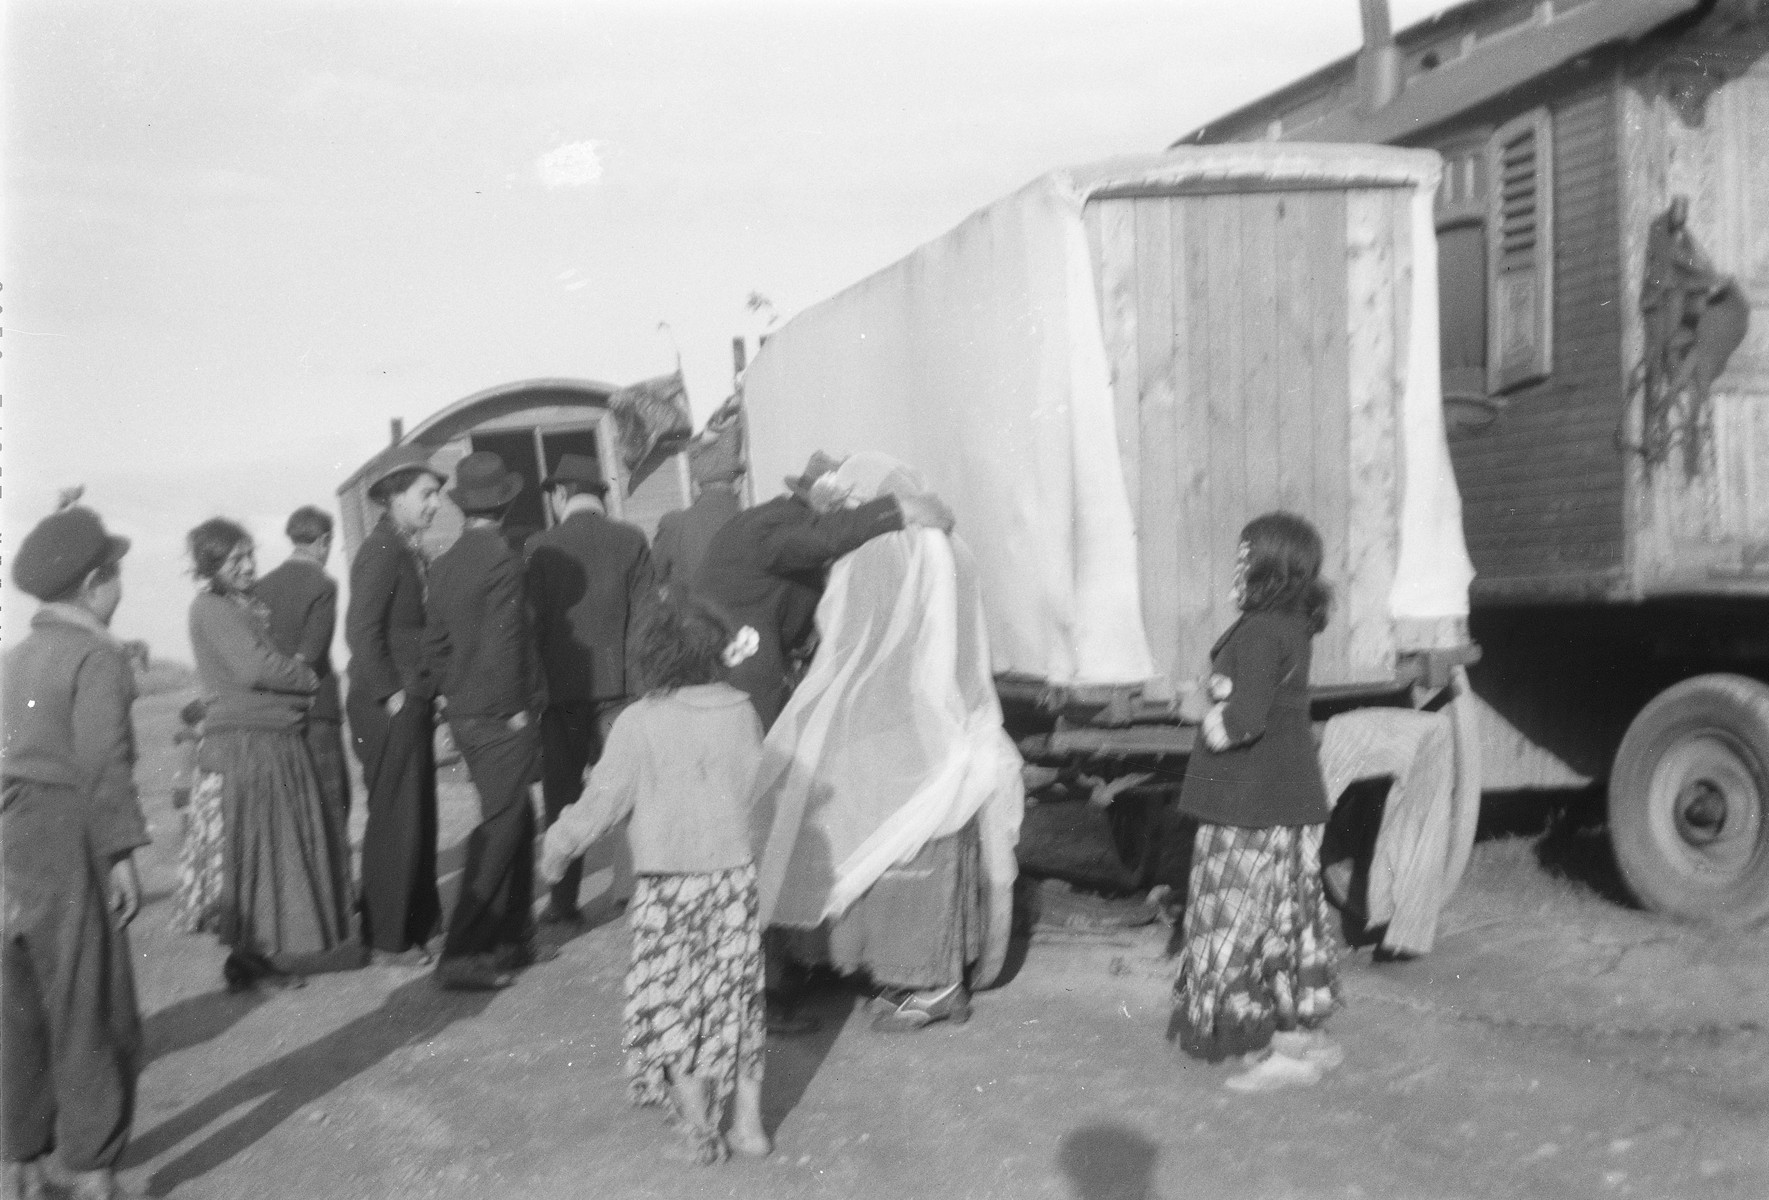 A group of Roma (Gypsies) gather alongside a caravan, possibly during a wedding.  One woman wears a long white veil.